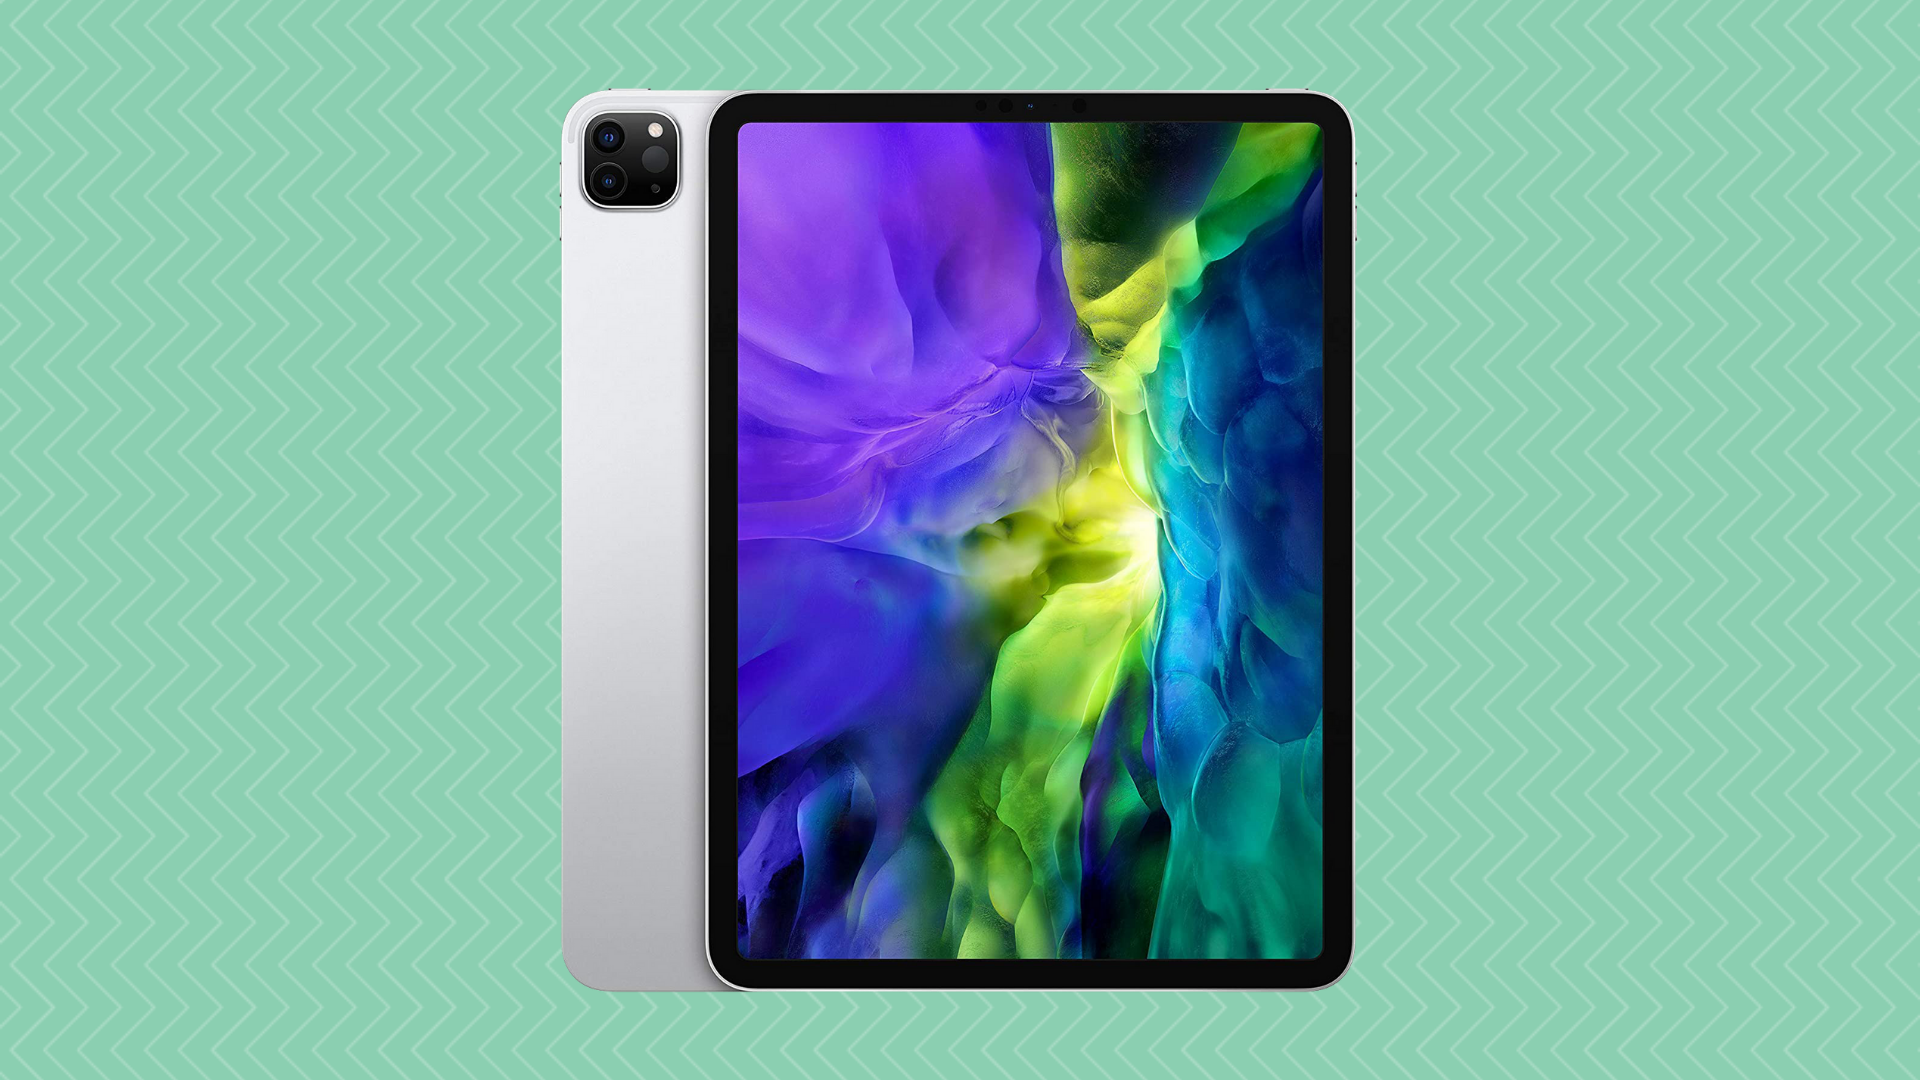 The newest Apple iPad Pro 'takes everything to the next level' — and it's at an all-time low price at Amazon